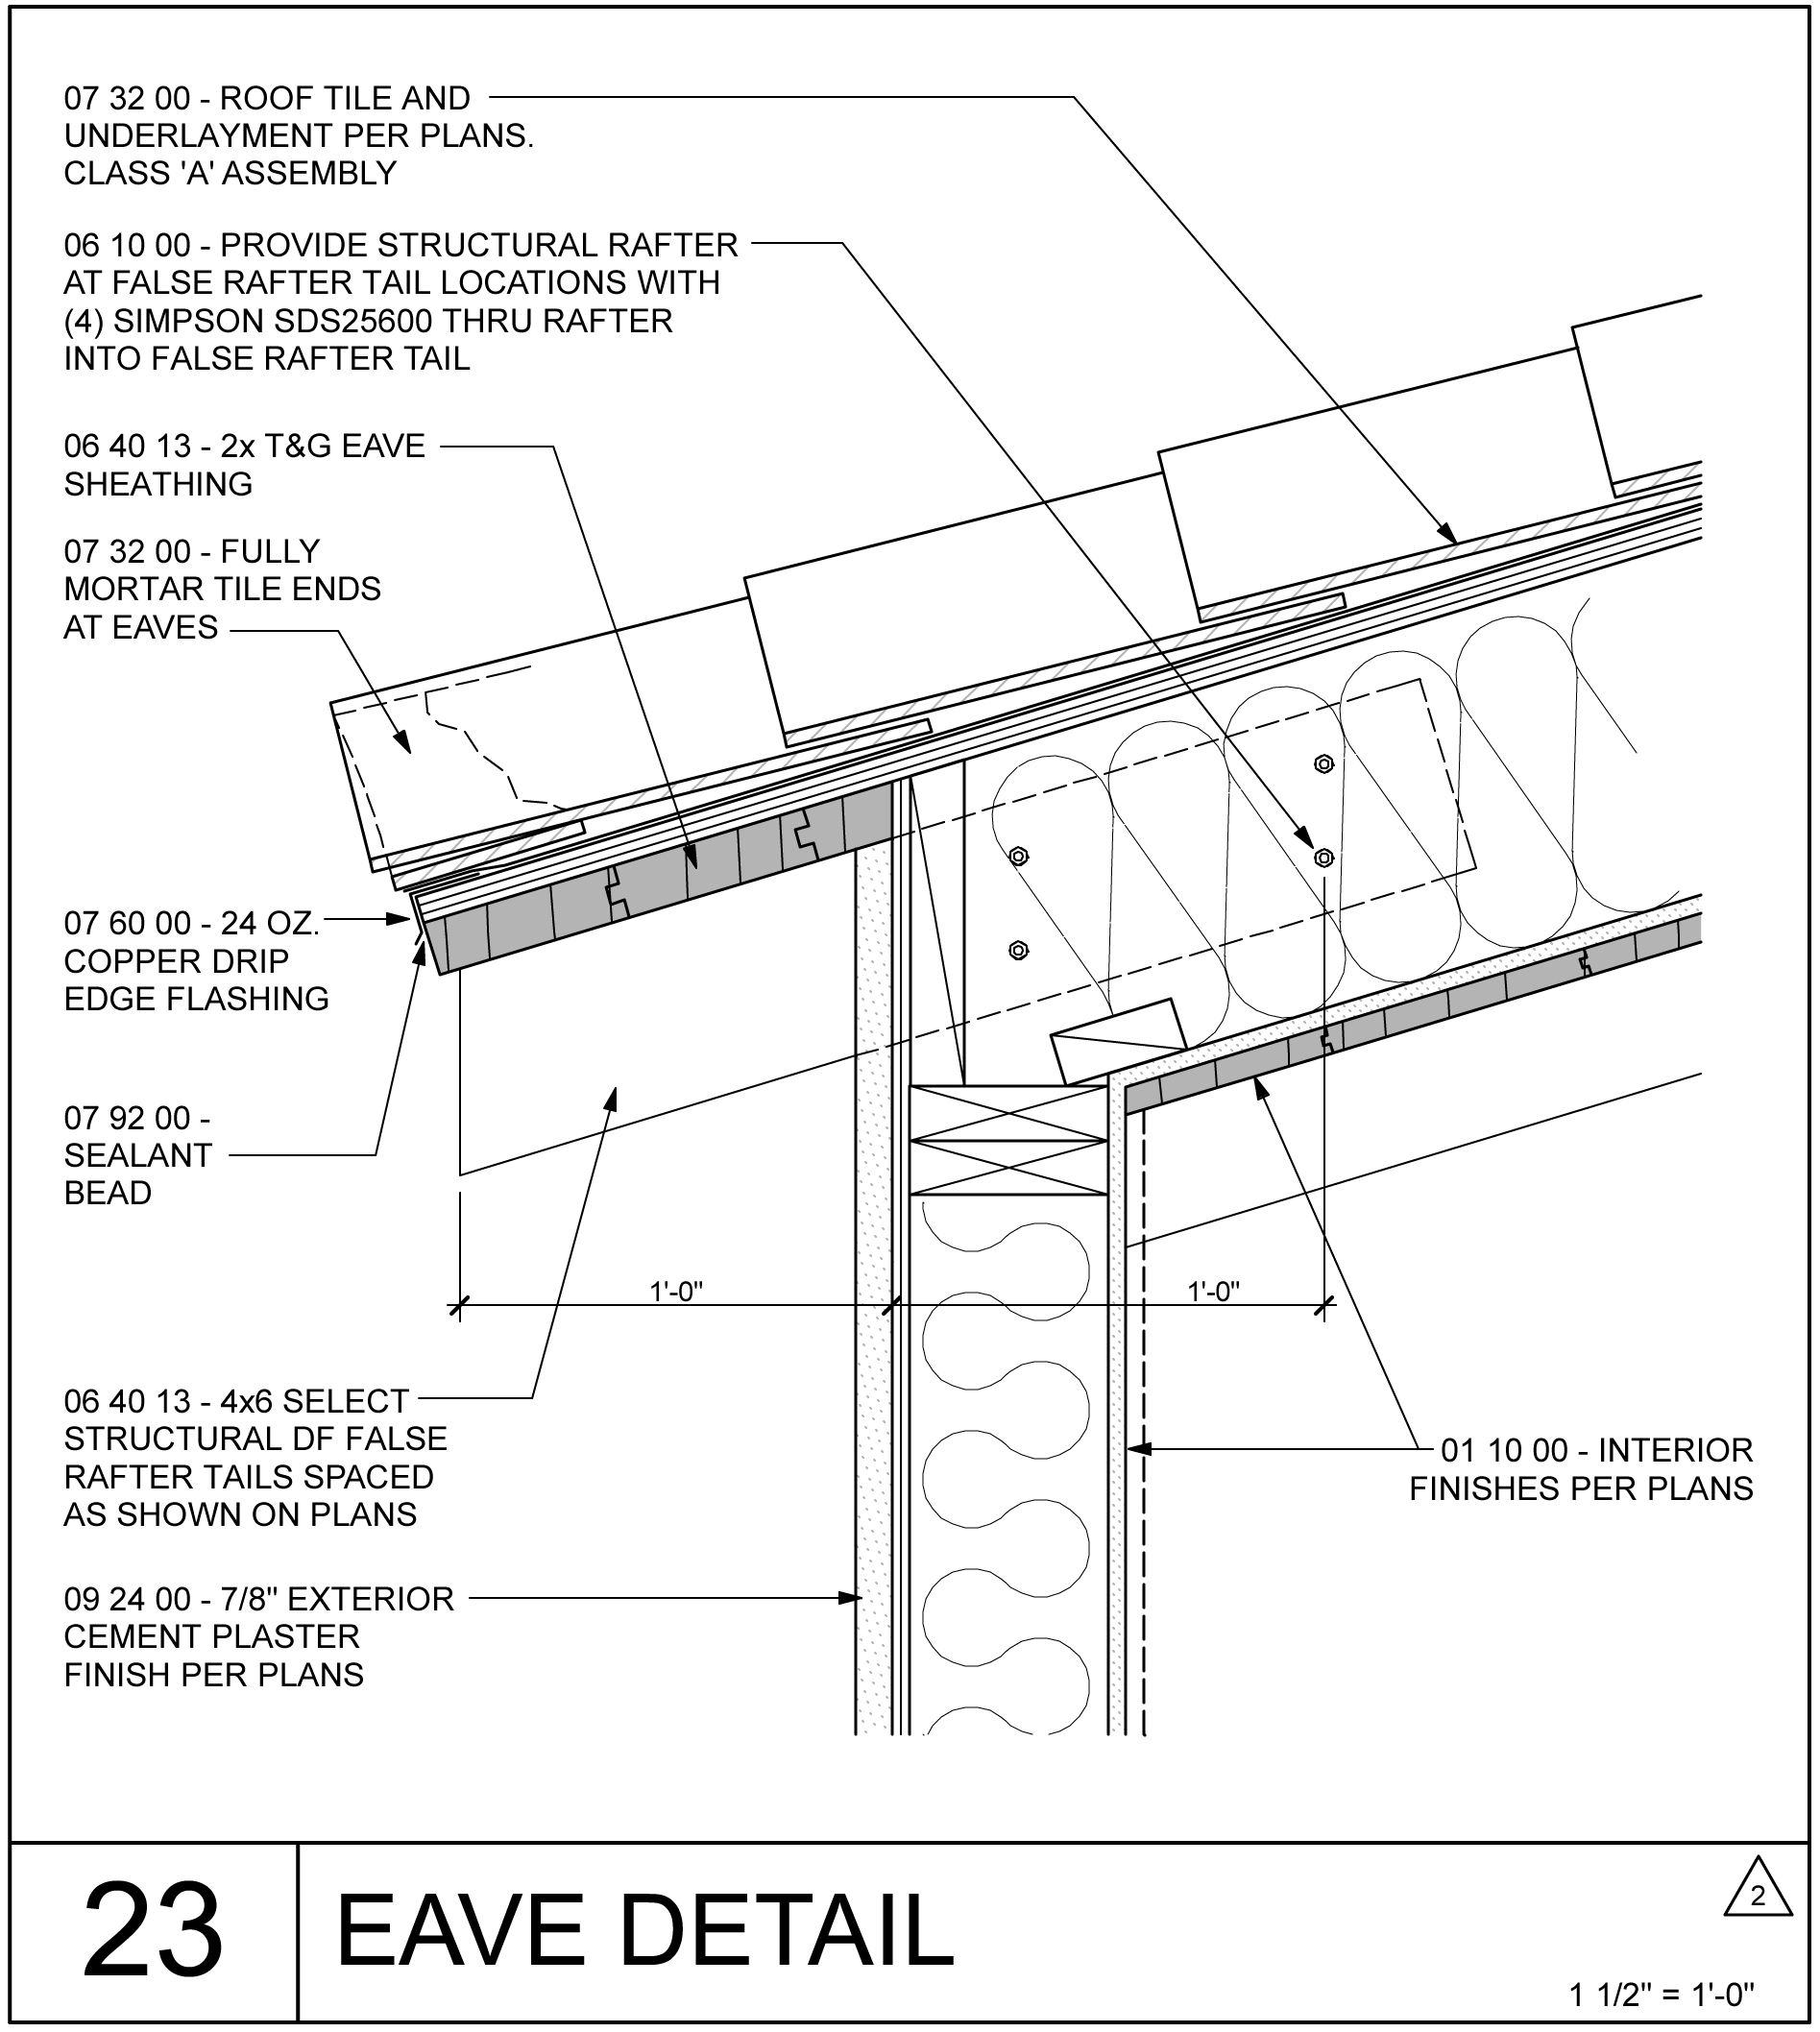 advantages of using cad over manual drawing